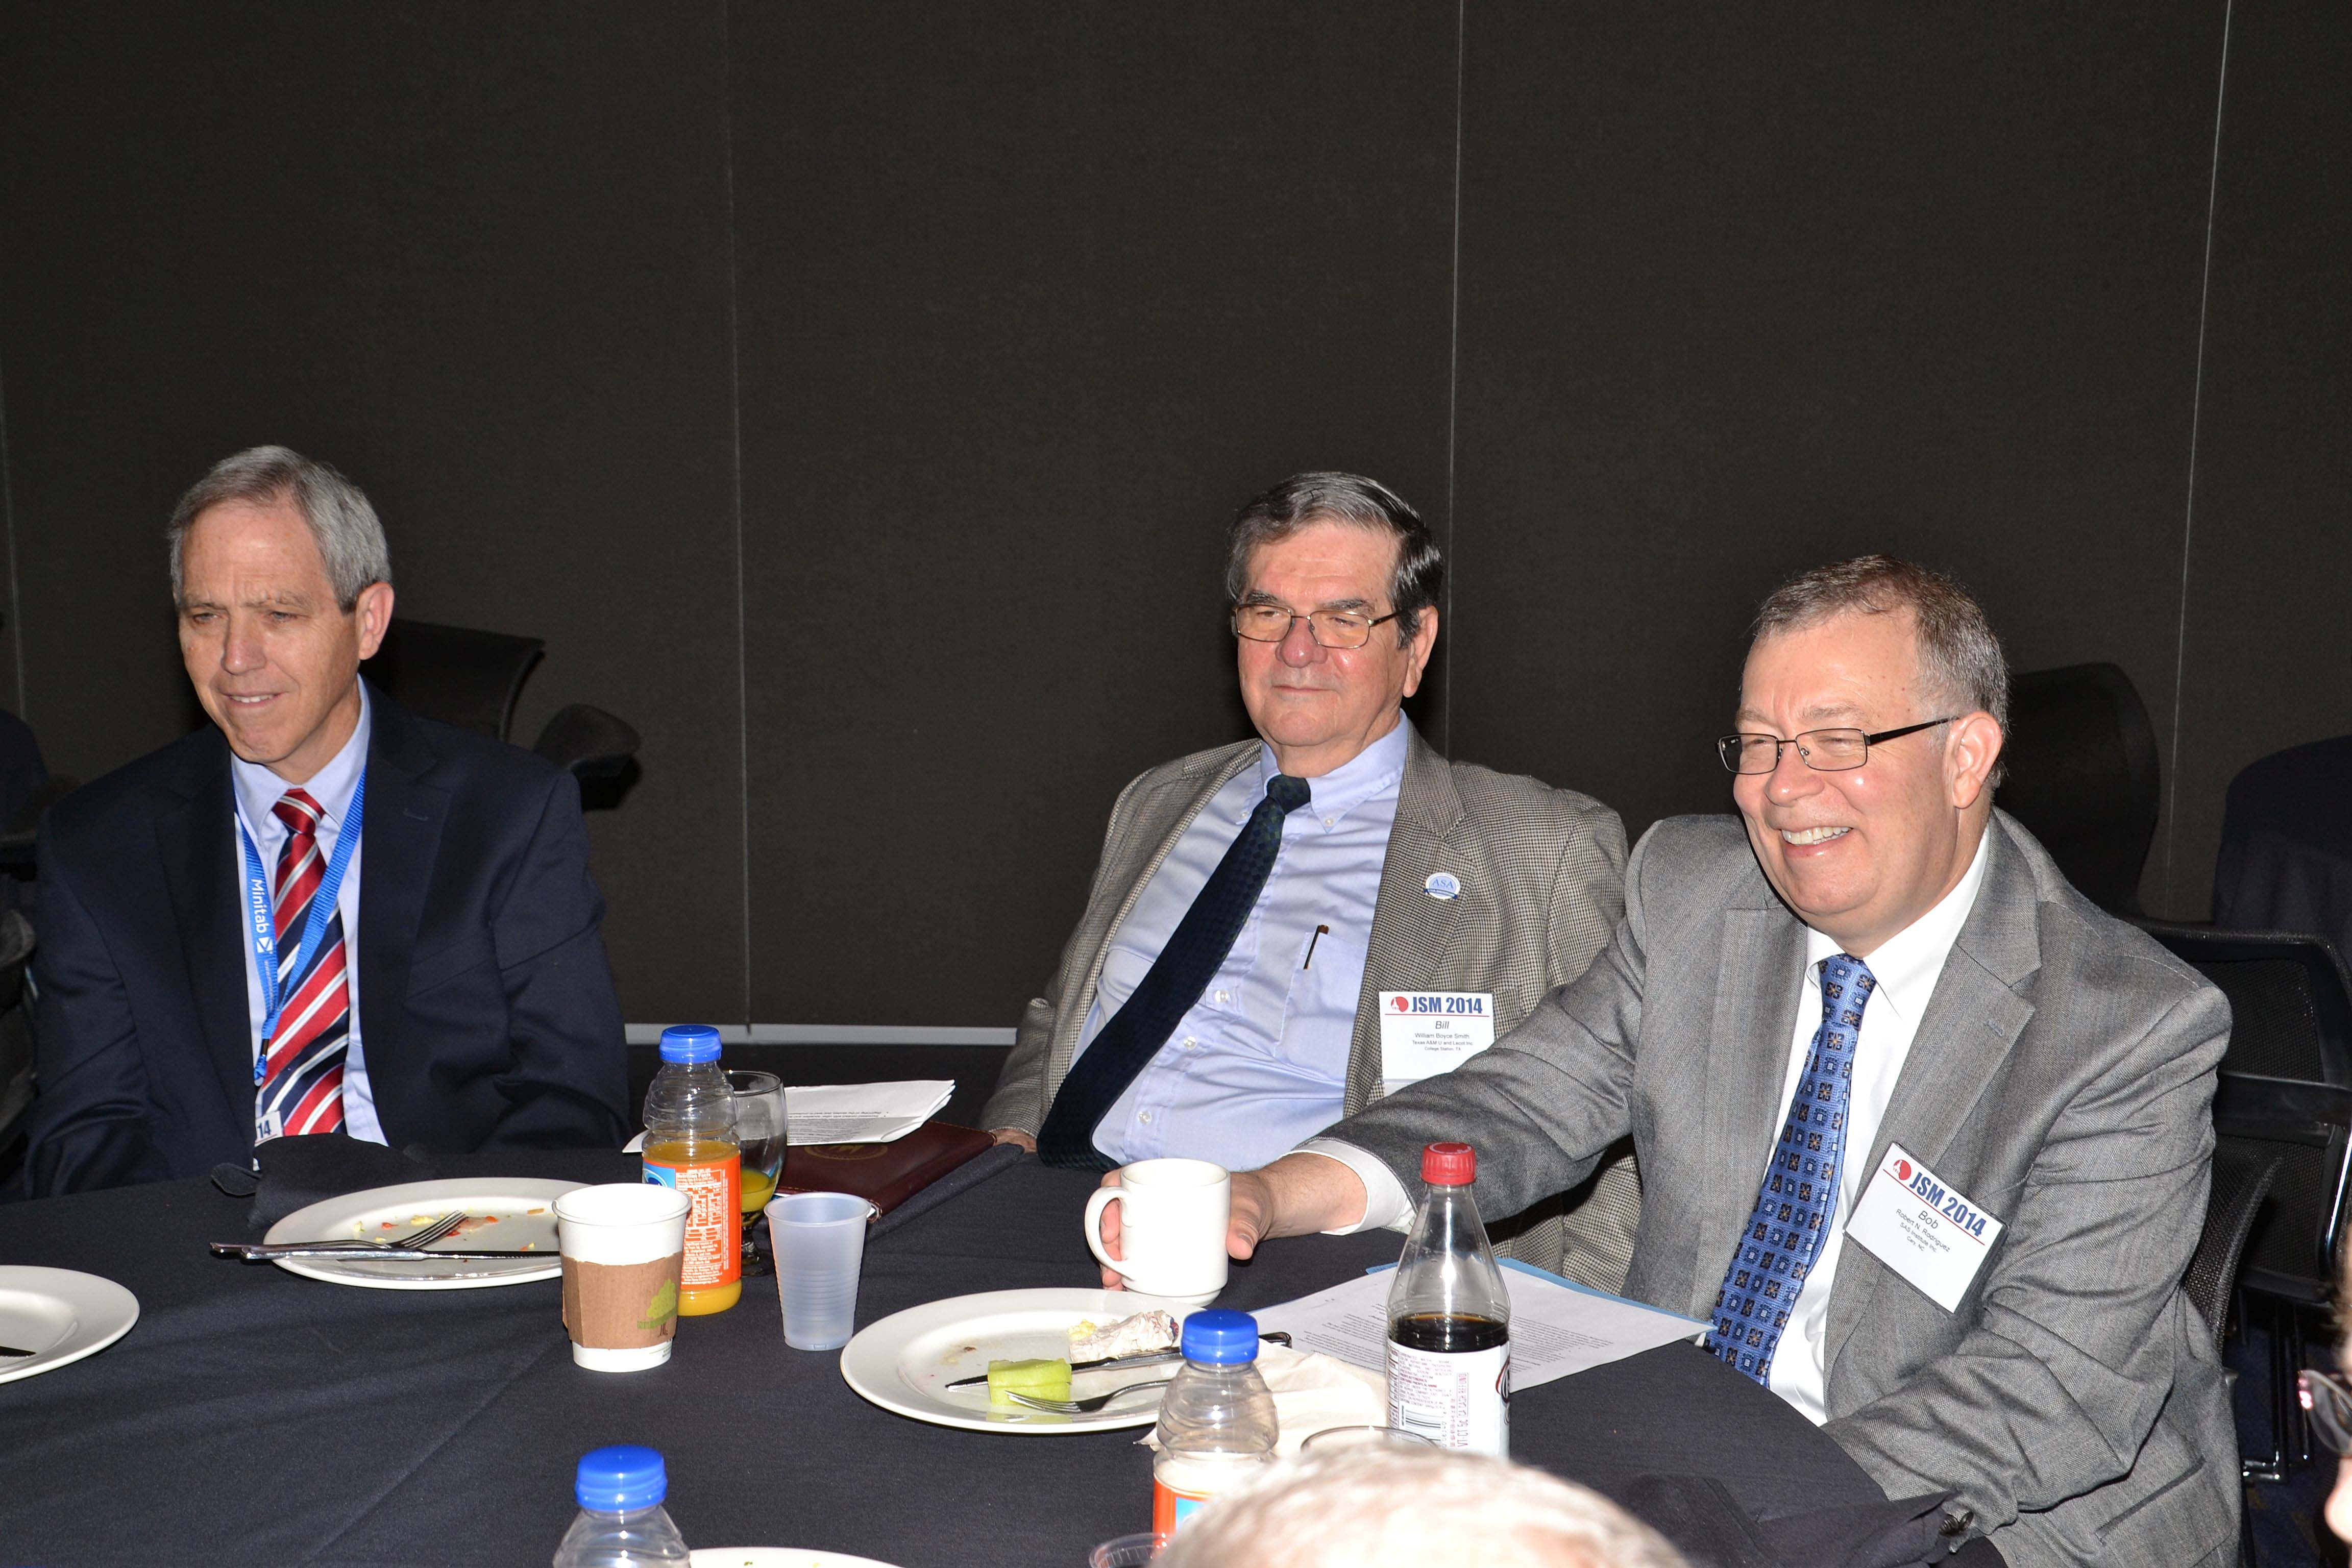 From left: Bob Mason. Bill Smith, and Bob Rodriguez participate in a roundtable discussion about the ASA